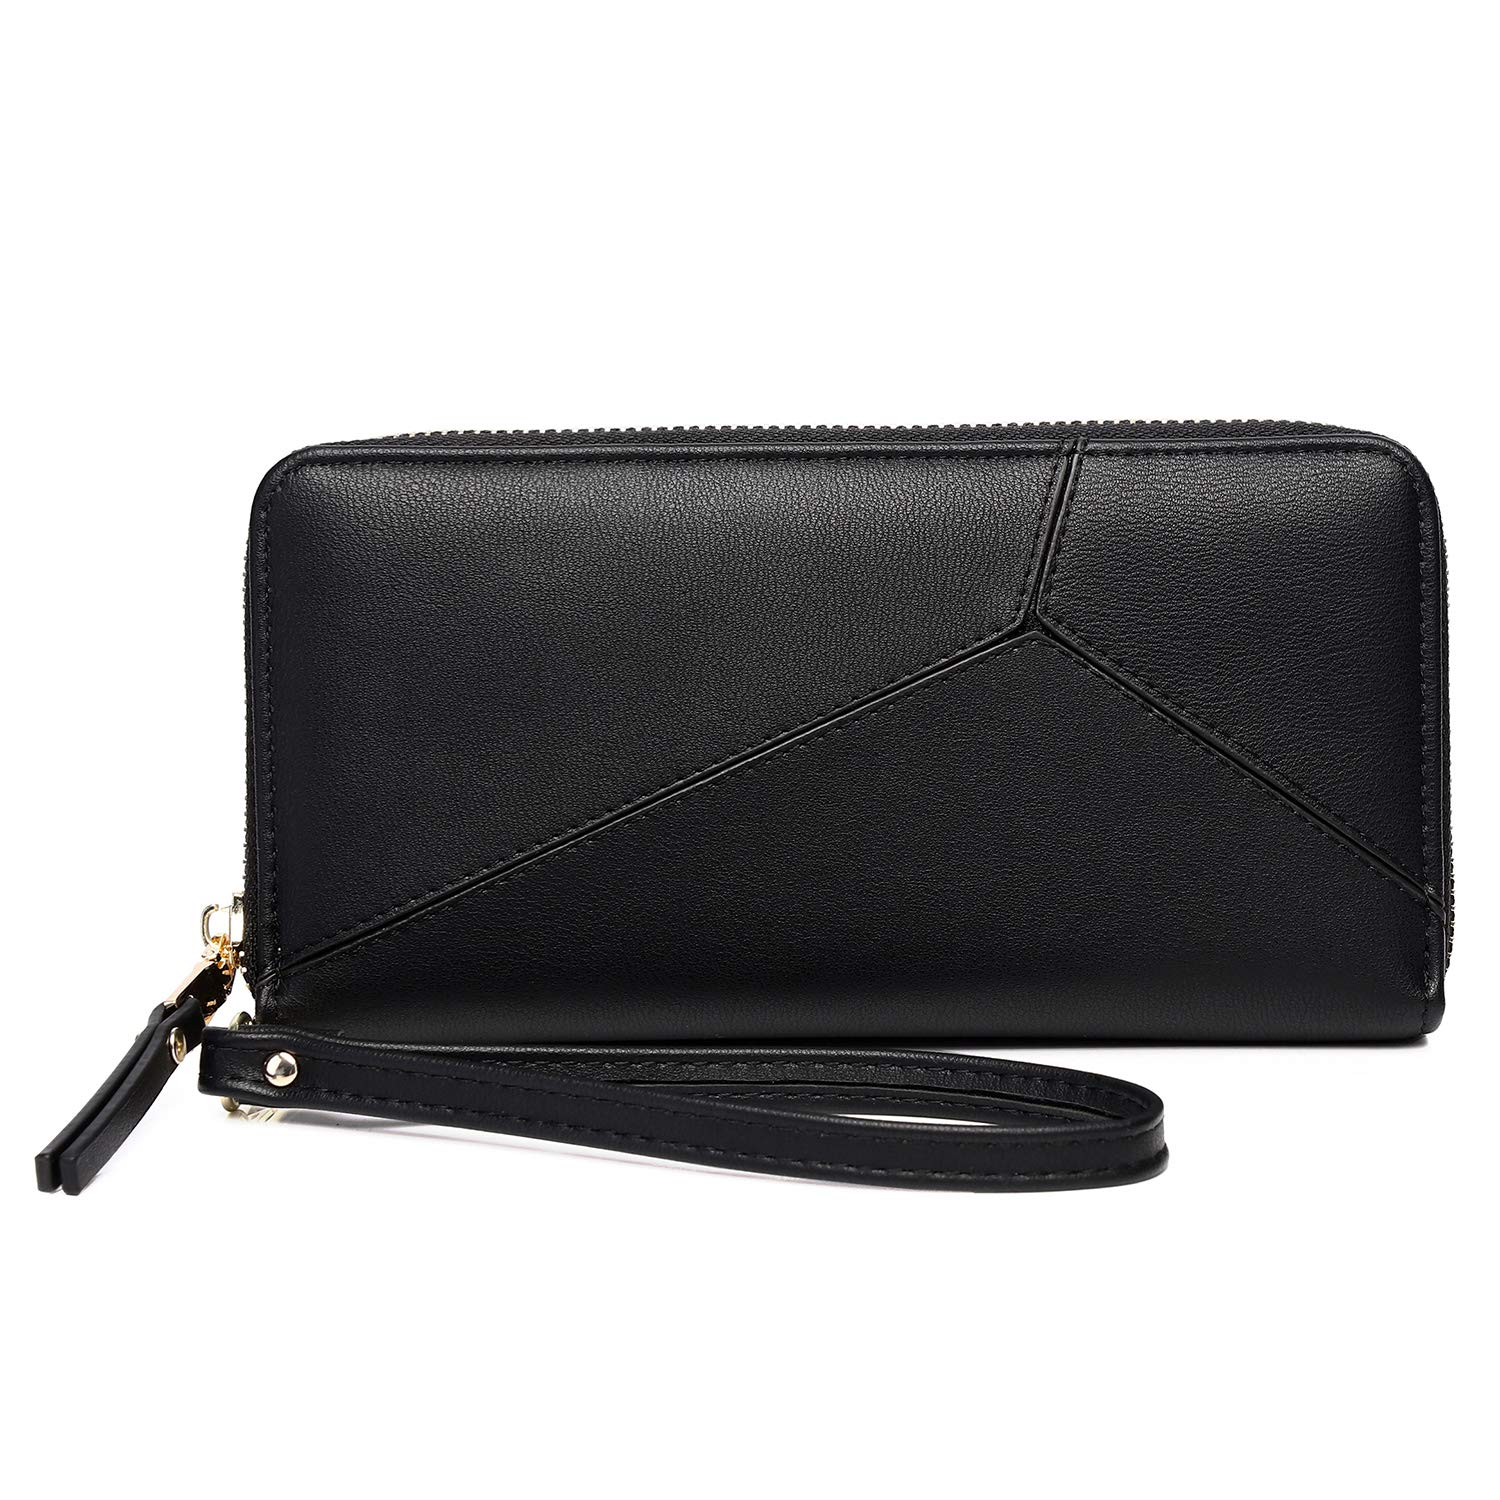 KOWENTIK Women Wallet Leather Zip Phone Clutch Large Travel Organizer Zipper Coin Purse Wristlet (Wallet Type4-Black)